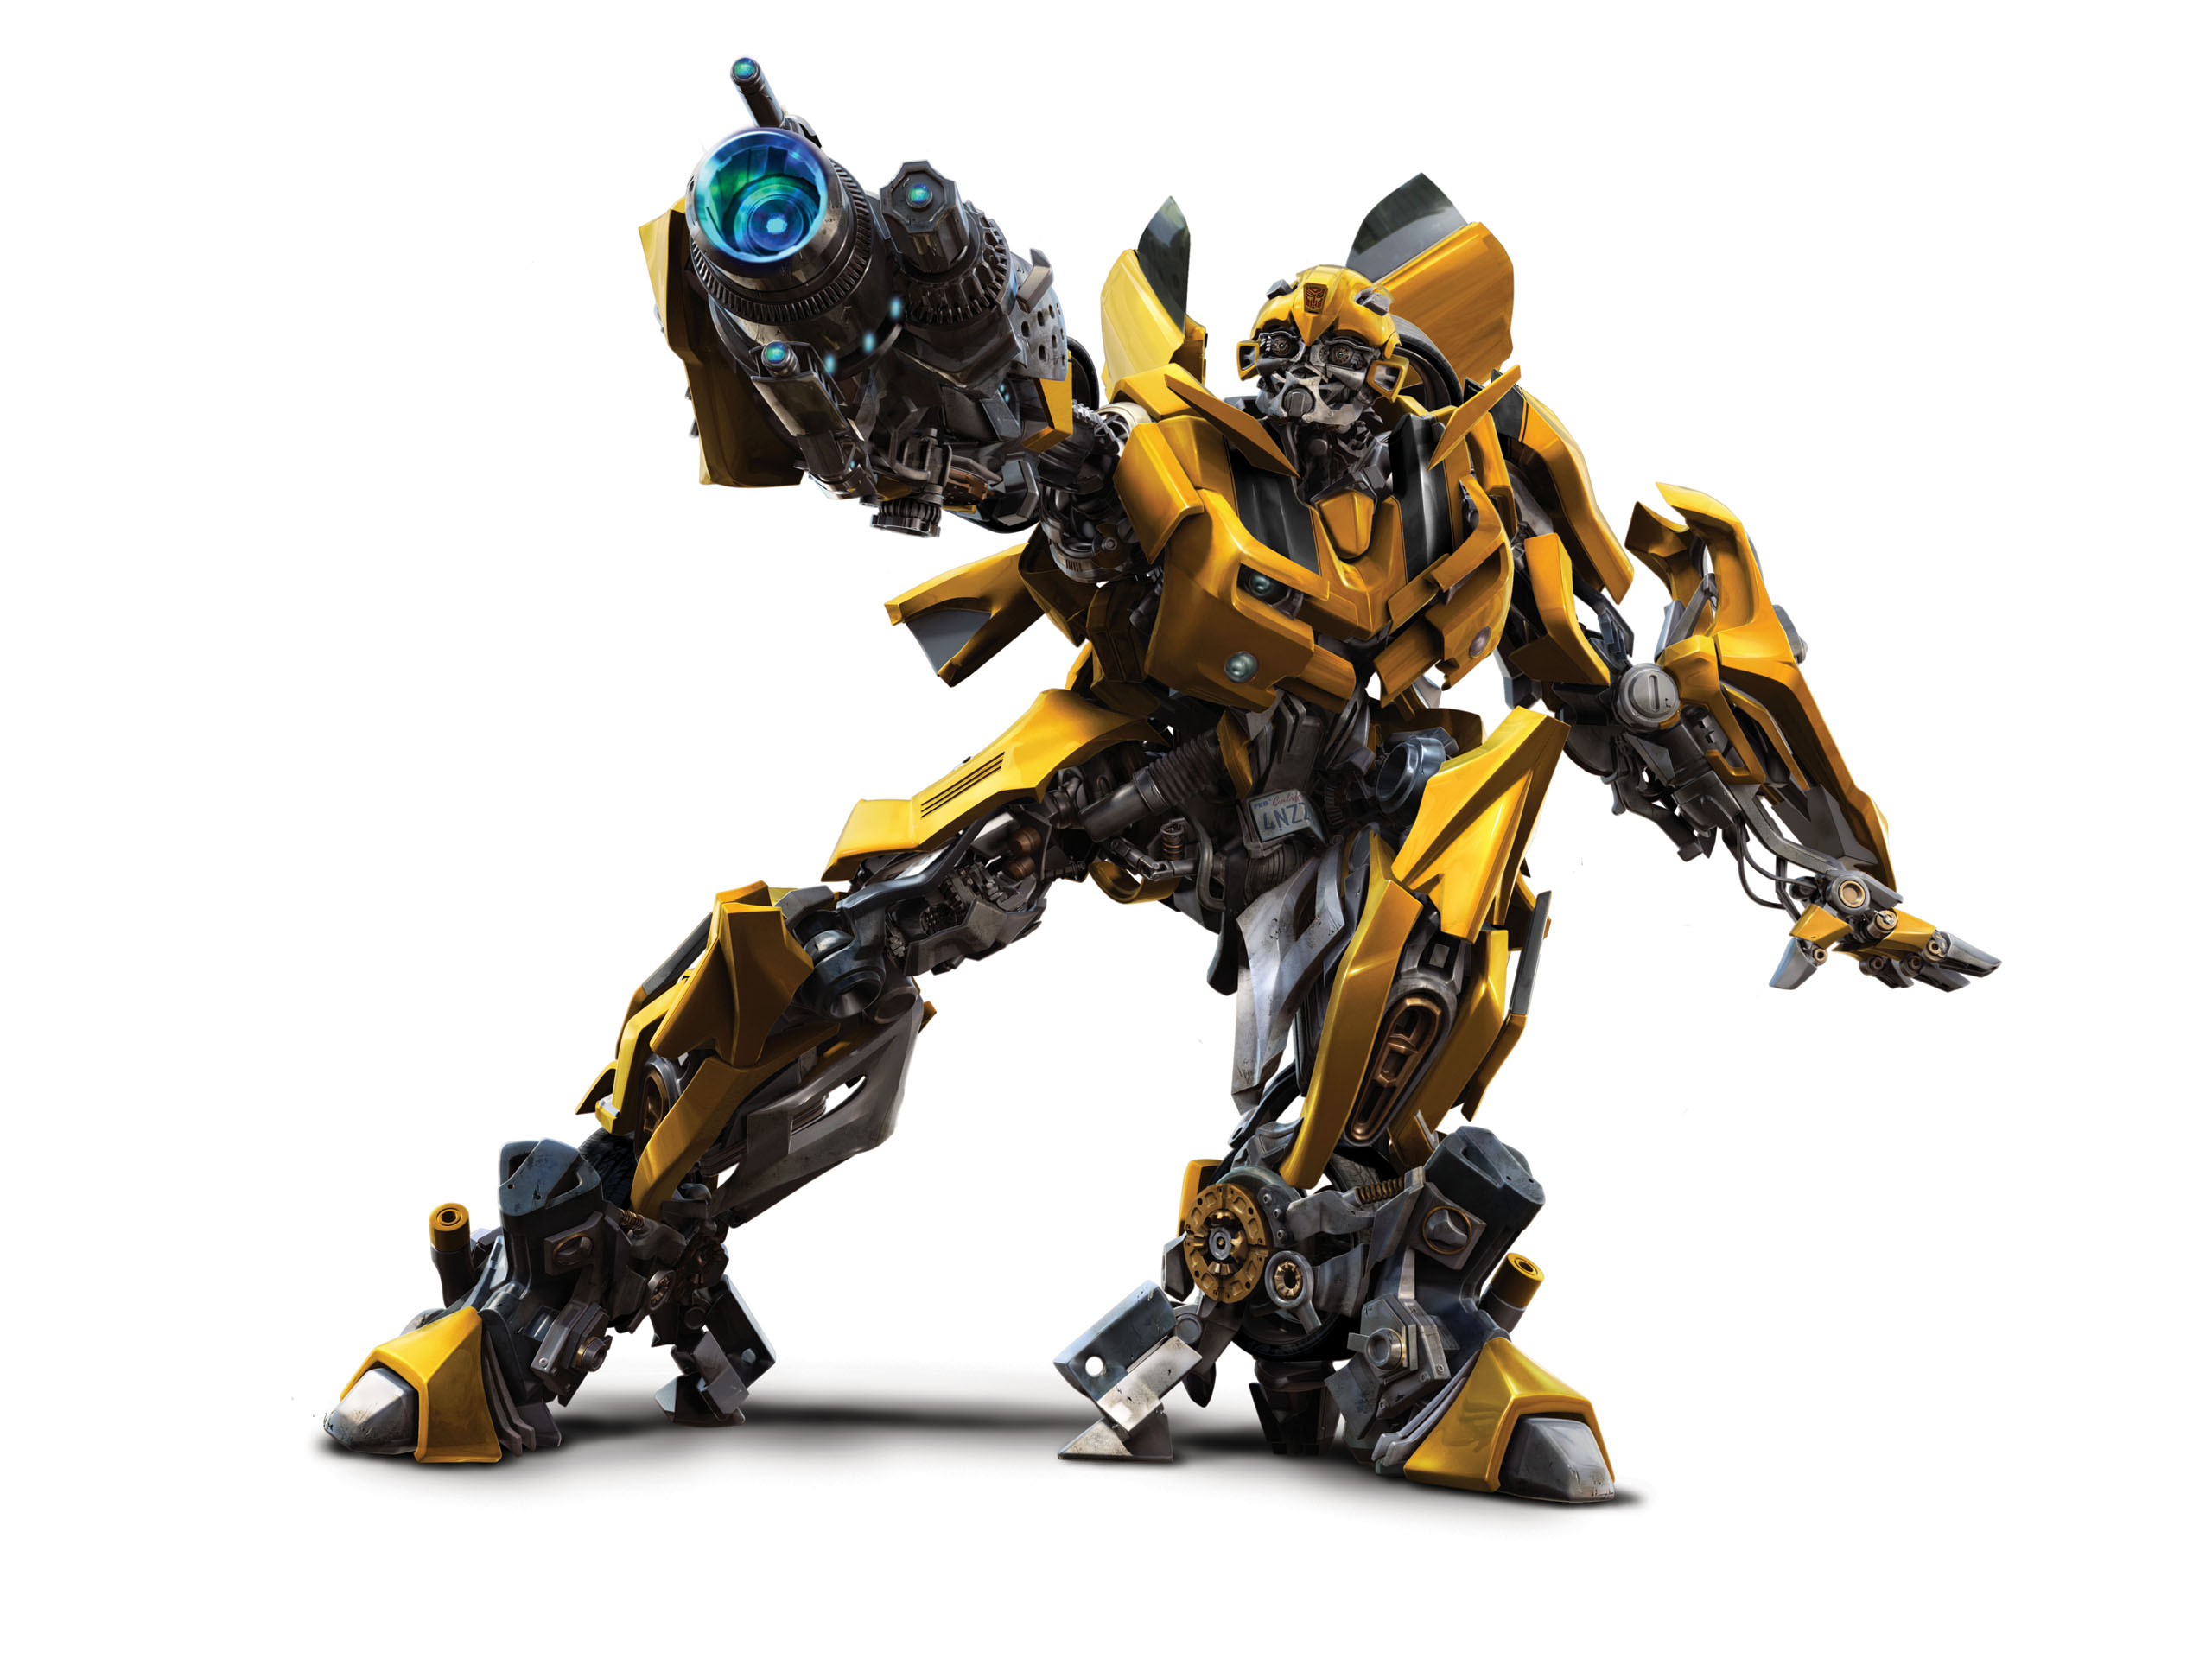 Free Transformers Png, Download Free Clip Art, Free Clip Art.